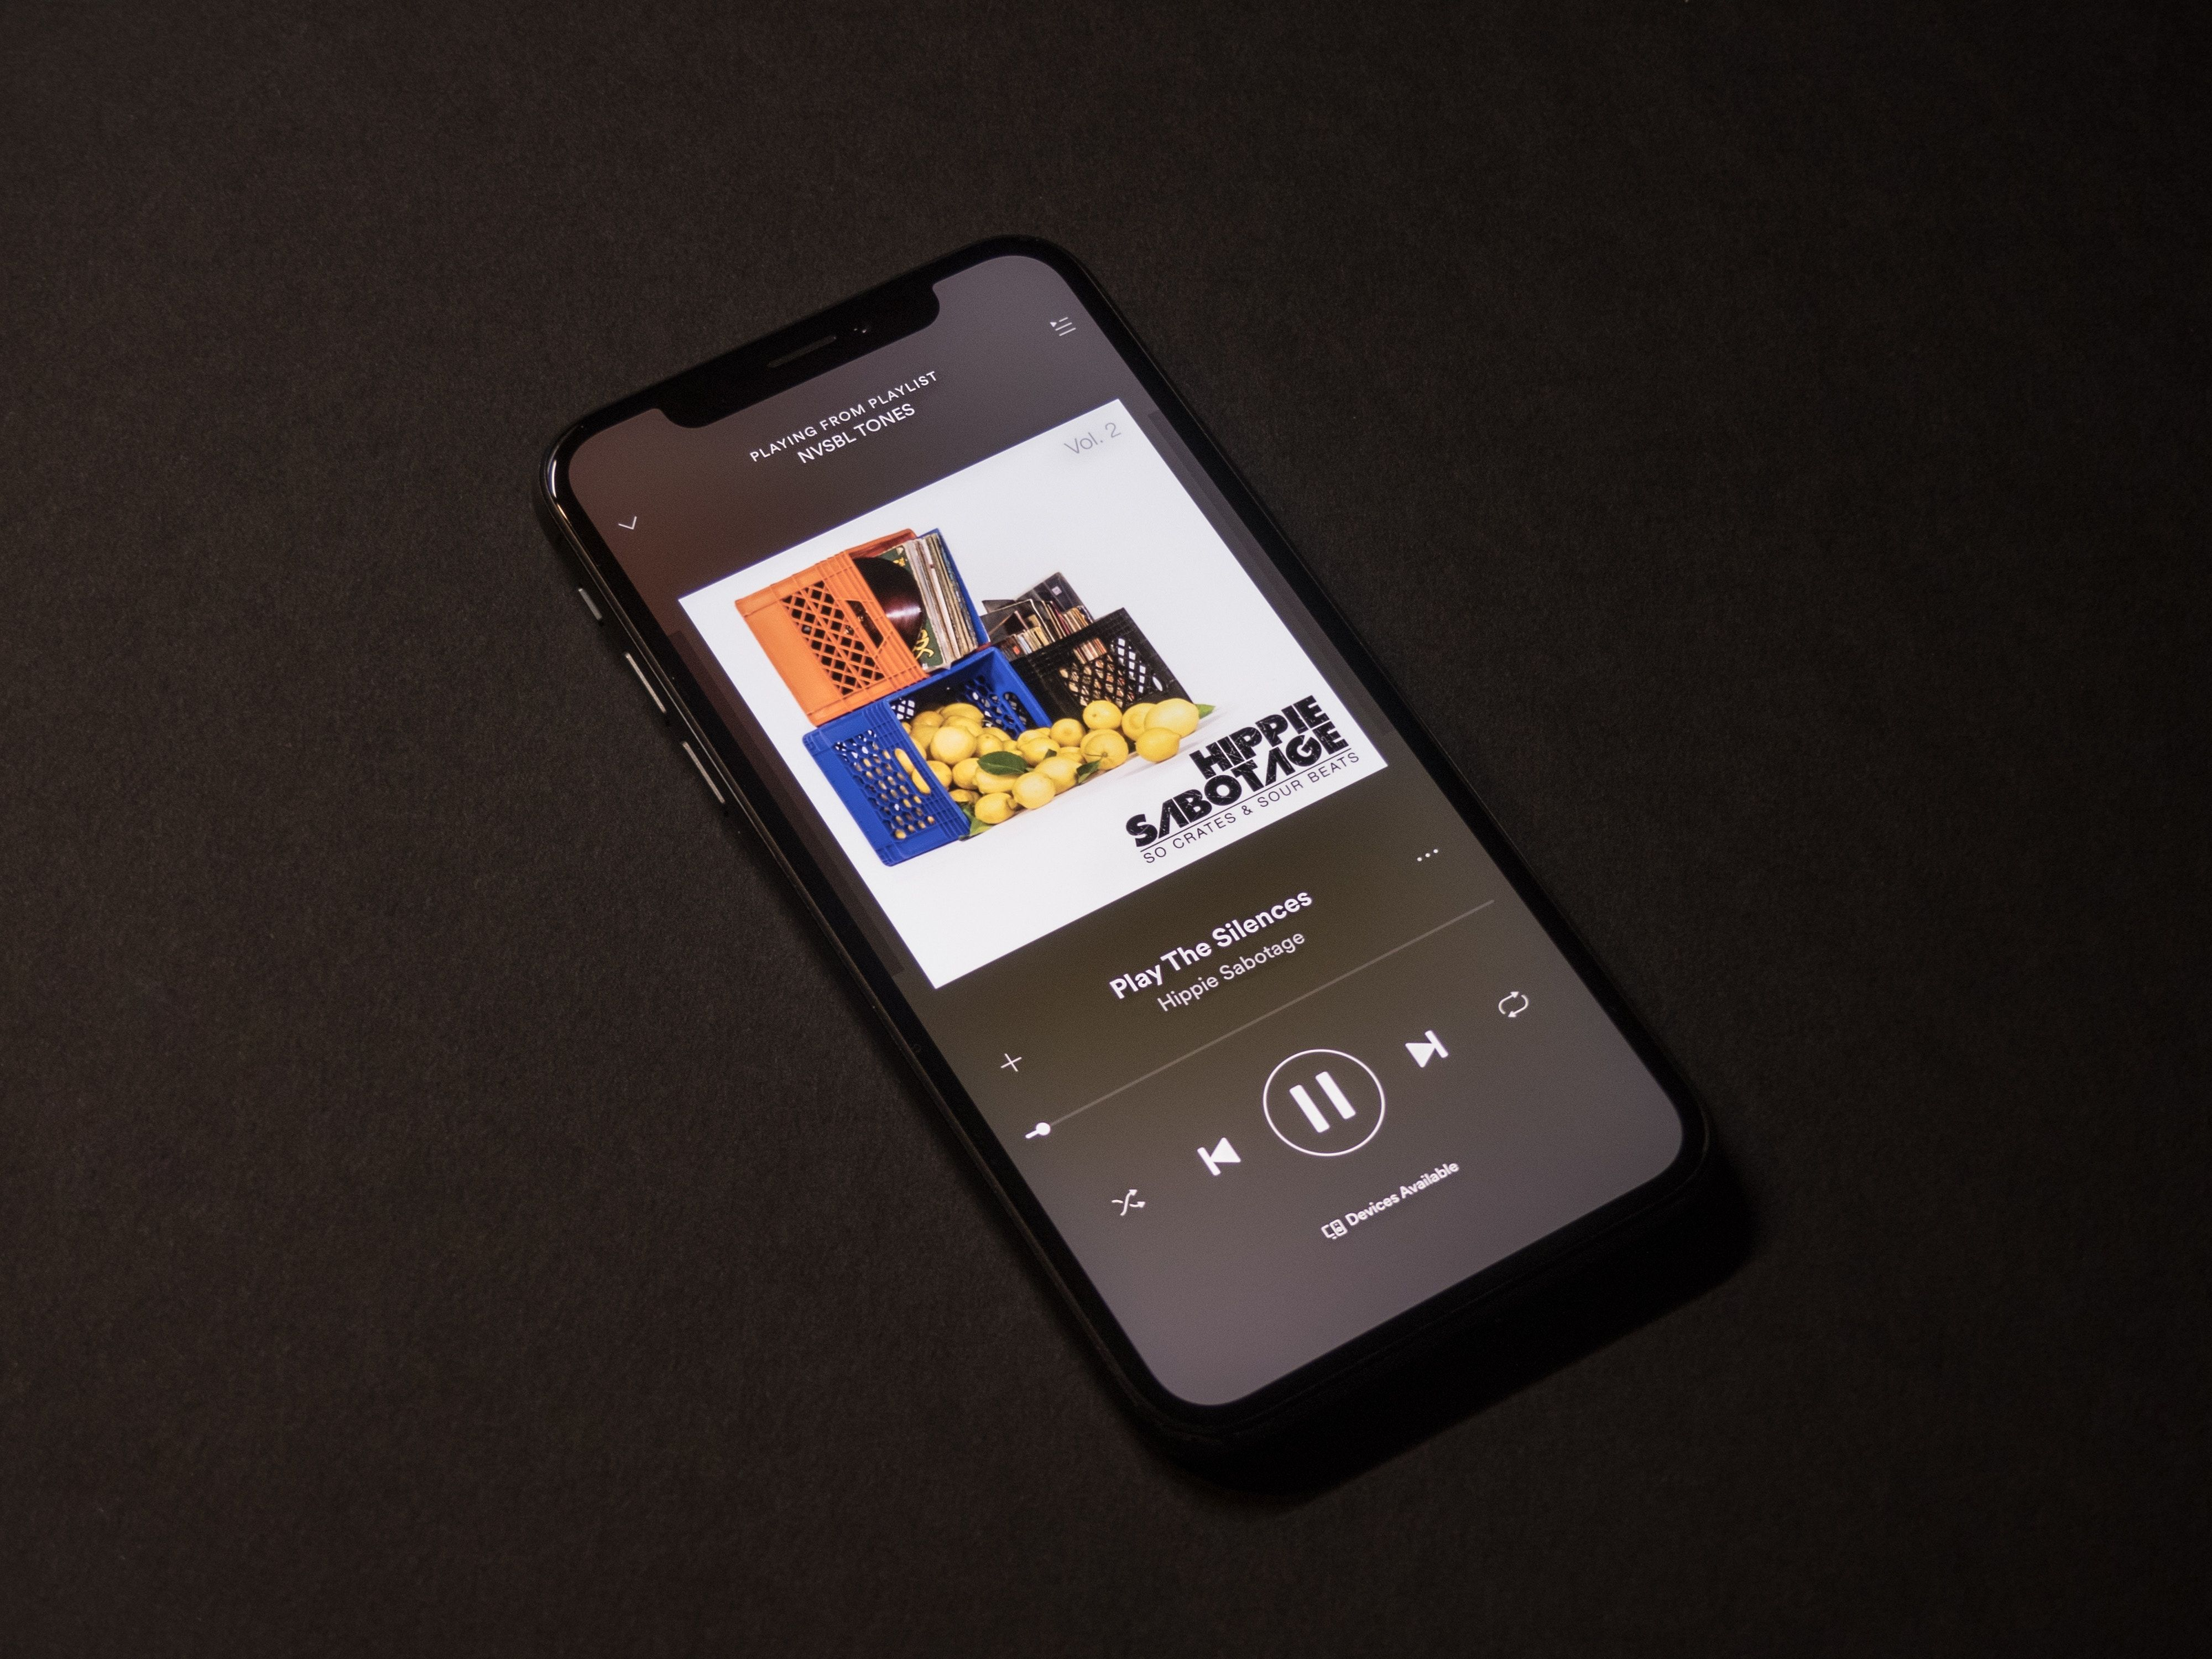 Apple music reportedly coming to verizon wireless unlimited data.